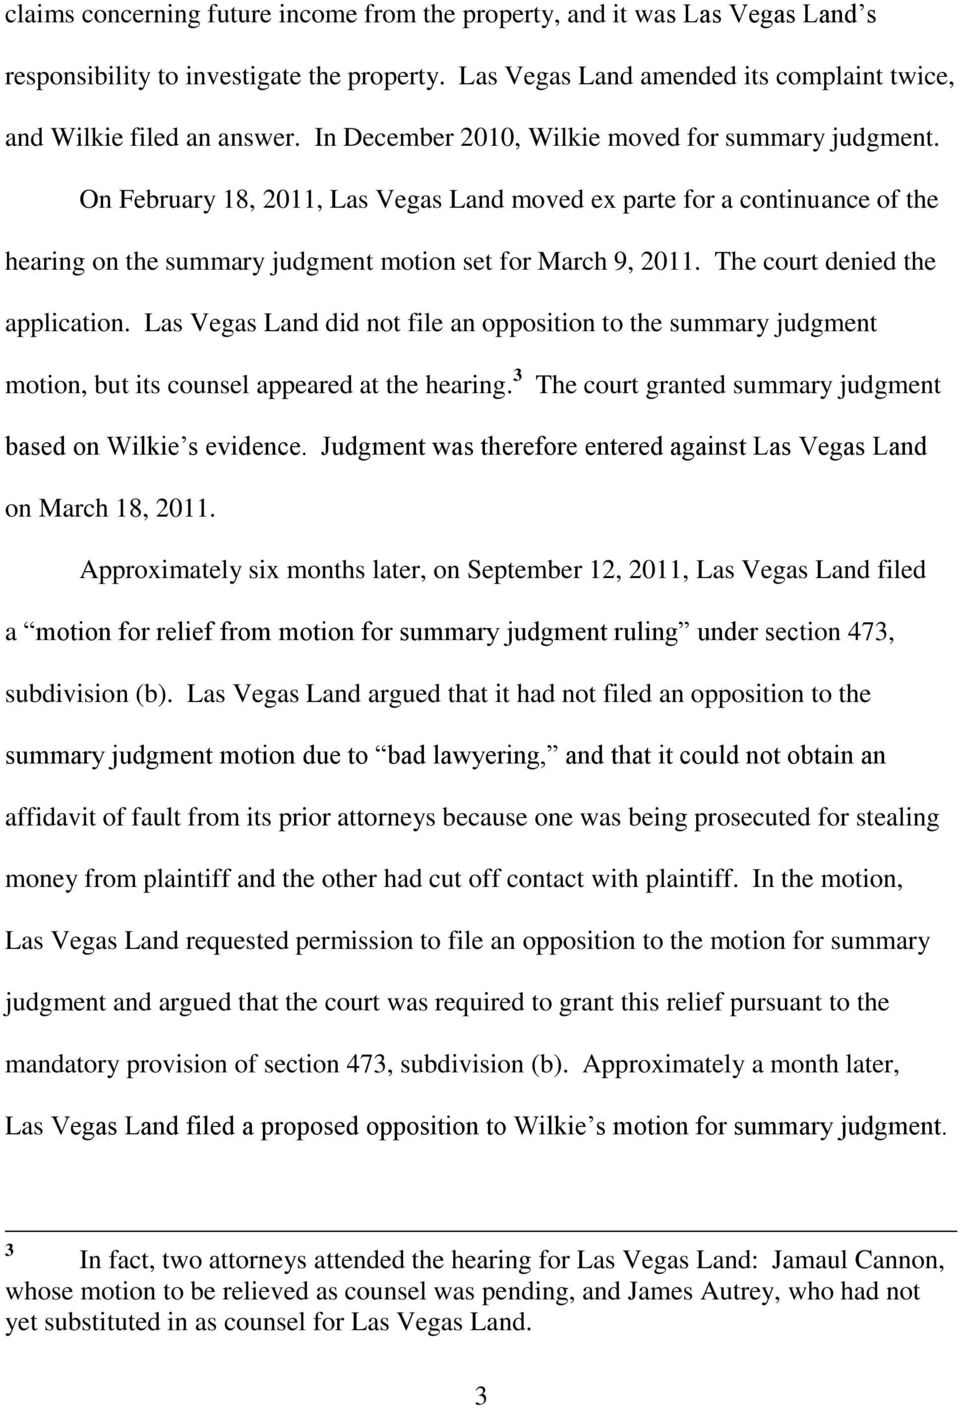 The court denied the application. Las Vegas Land did not file an opposition to the summary judgment motion, but its counsel appeared at the hearing.